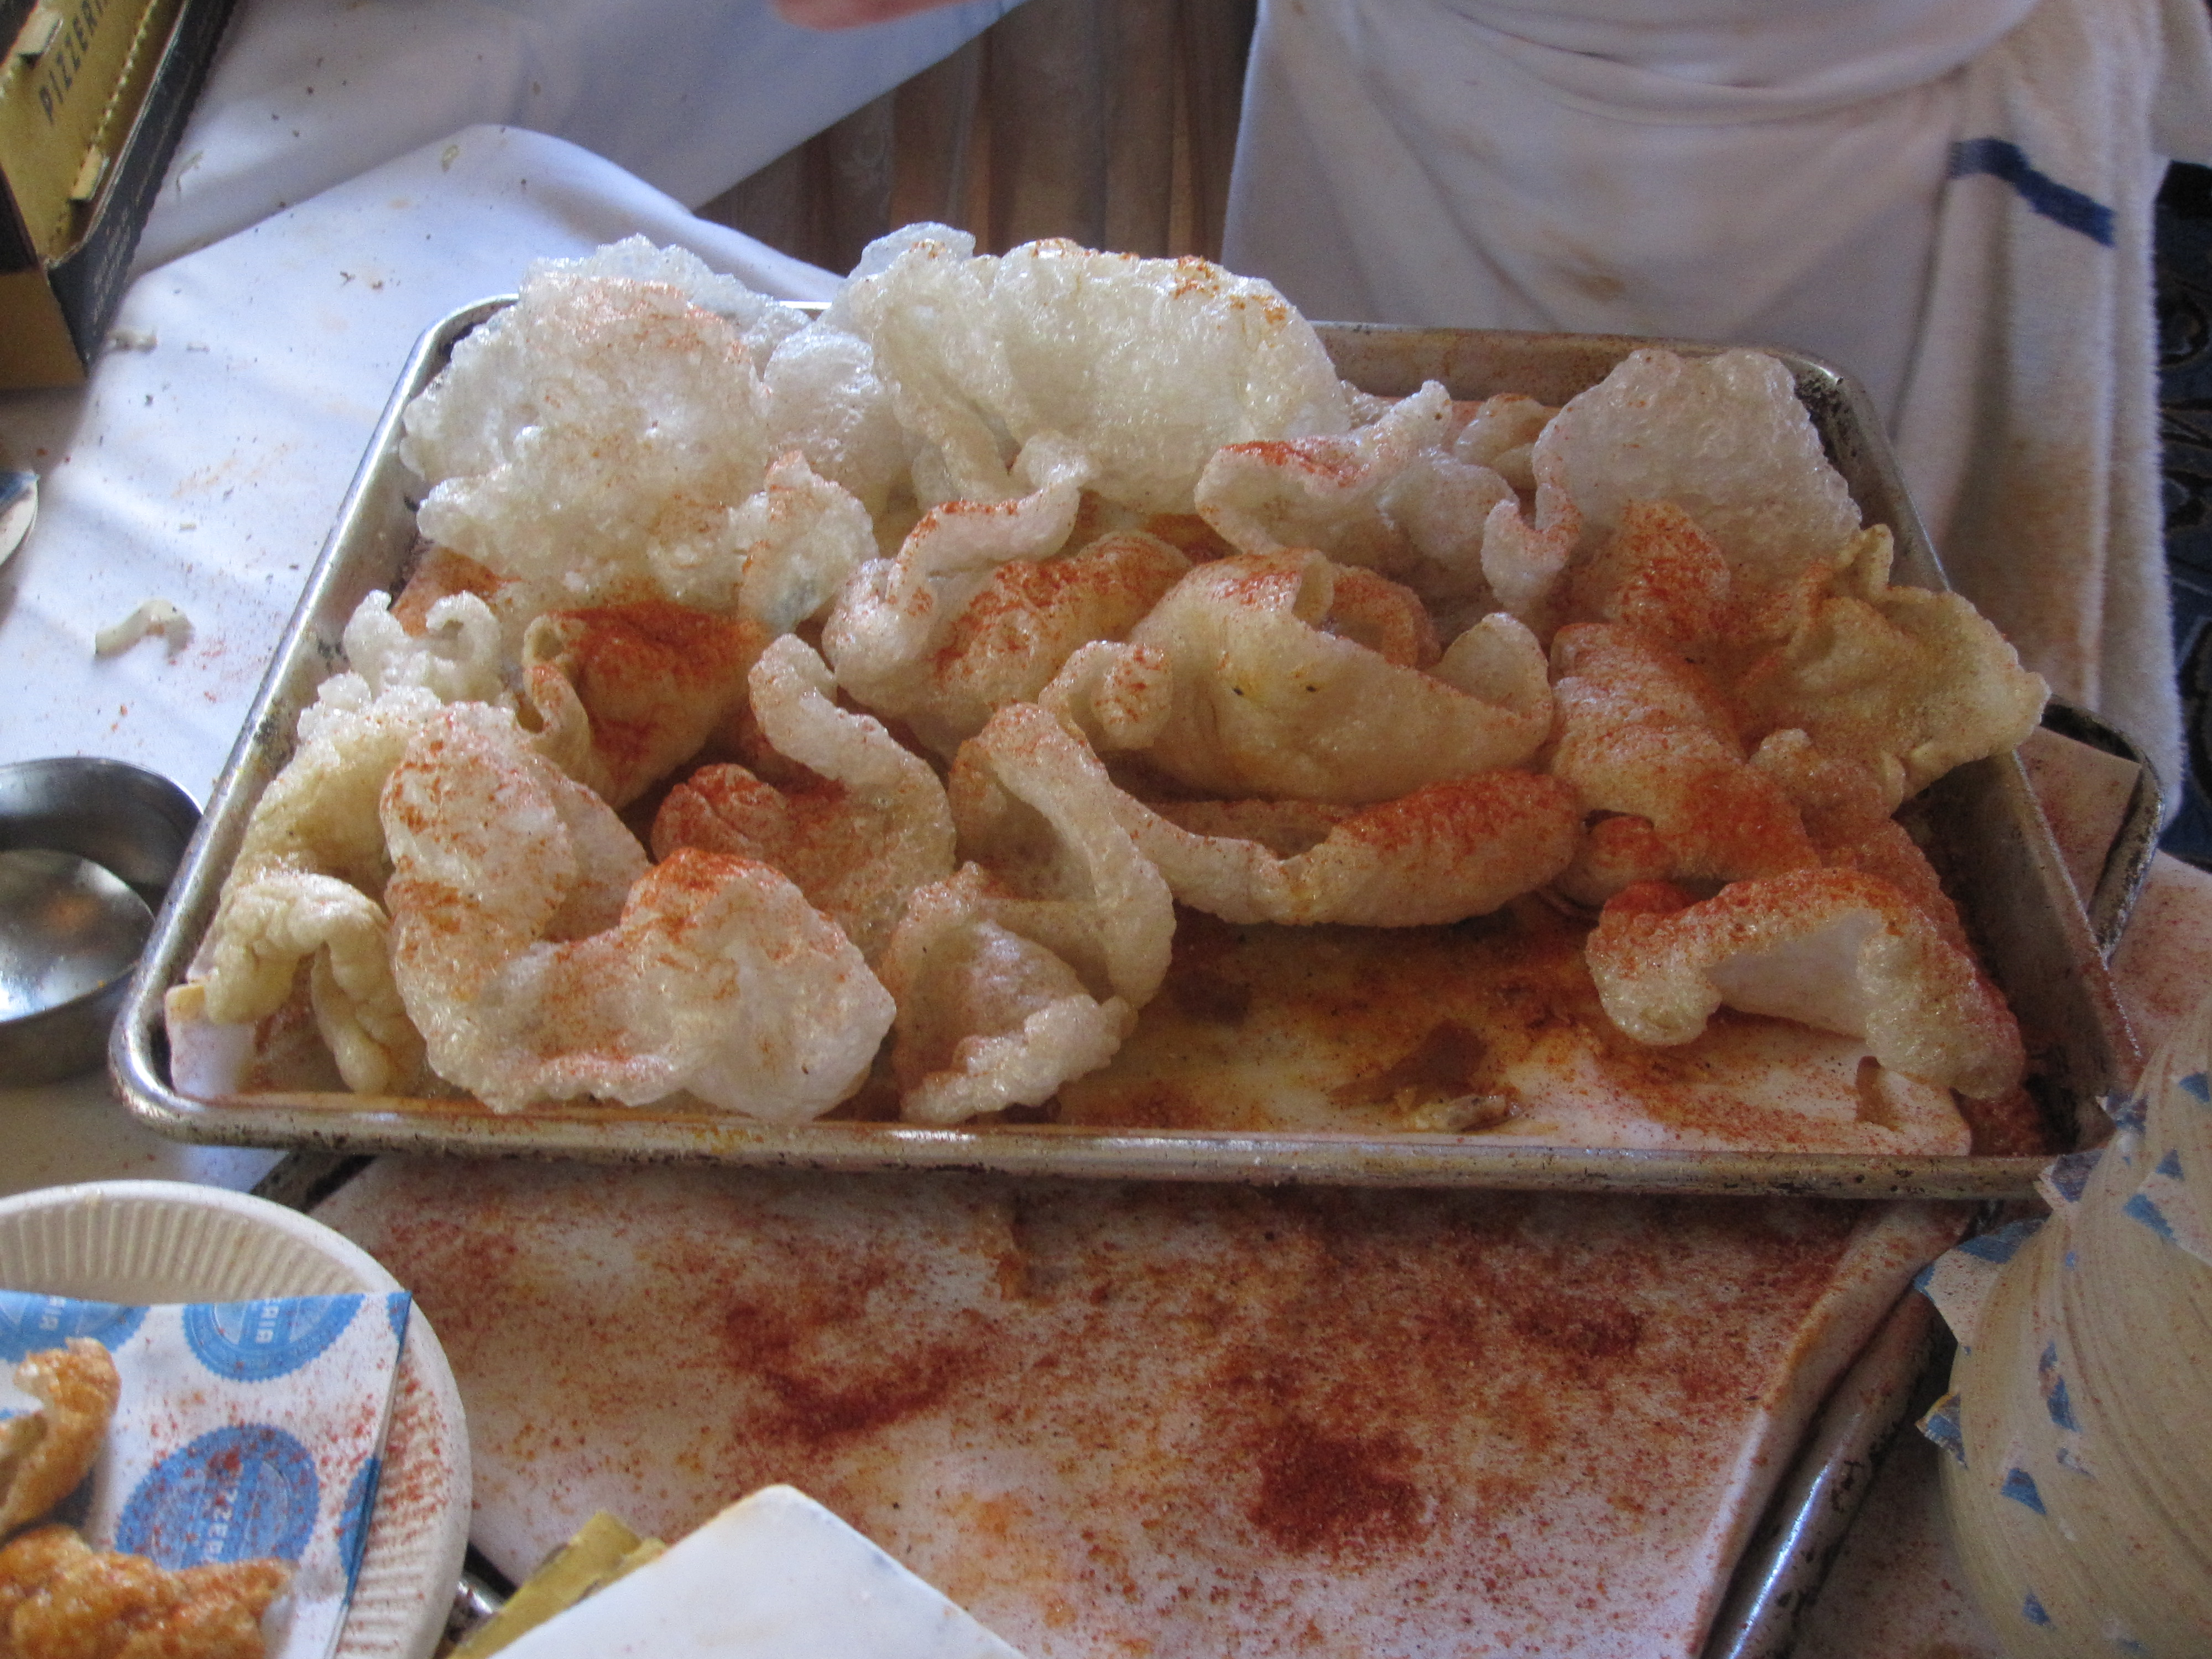 Chicharrones, or fried pork skin, at the Pizzeria Delfina table.